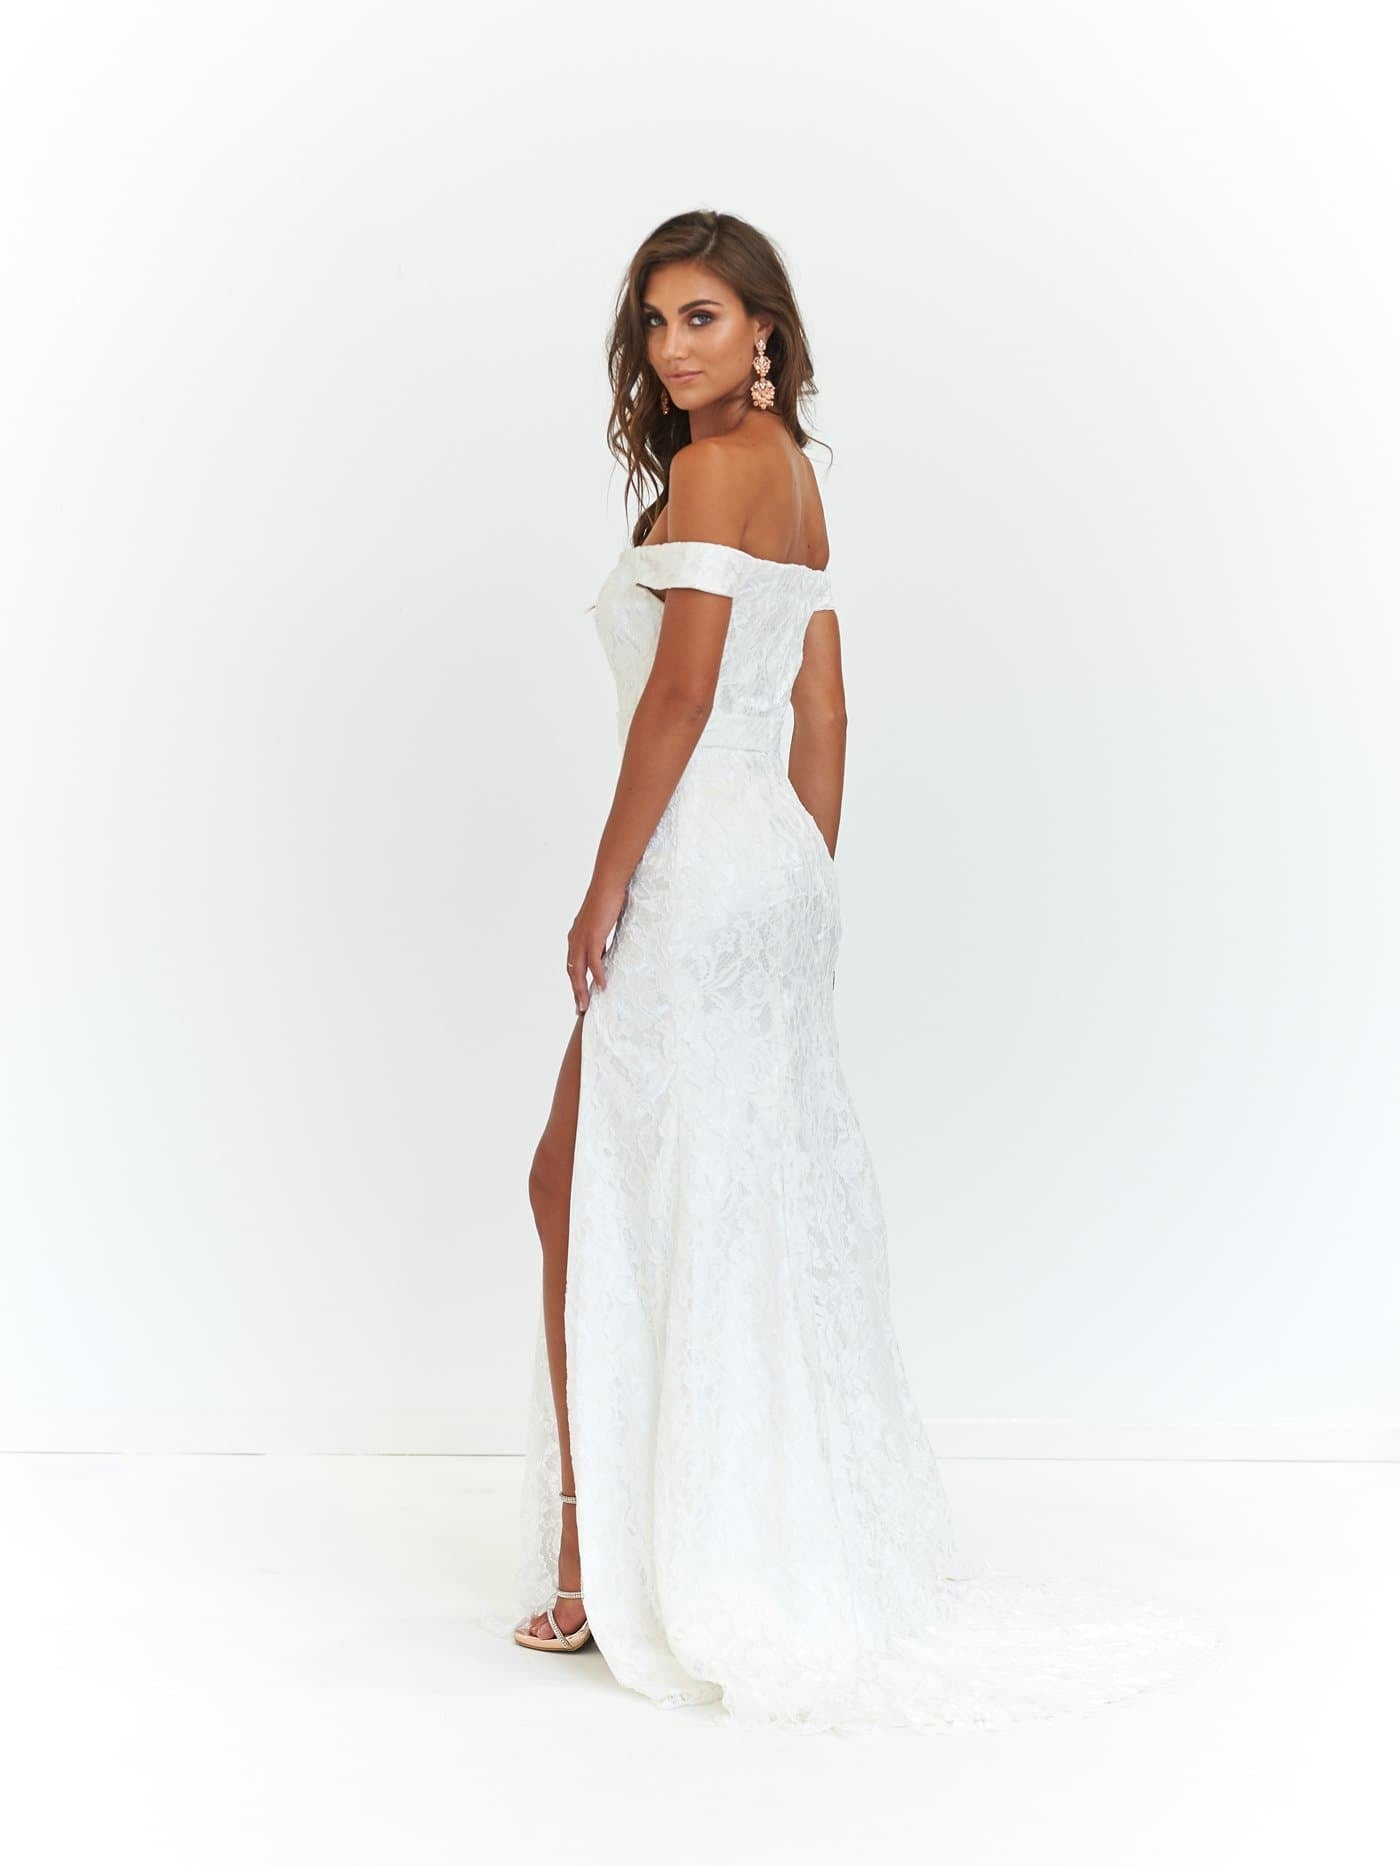 Leyla Formal Dress - White Off-Shoulder Lace Split Full Length Gown